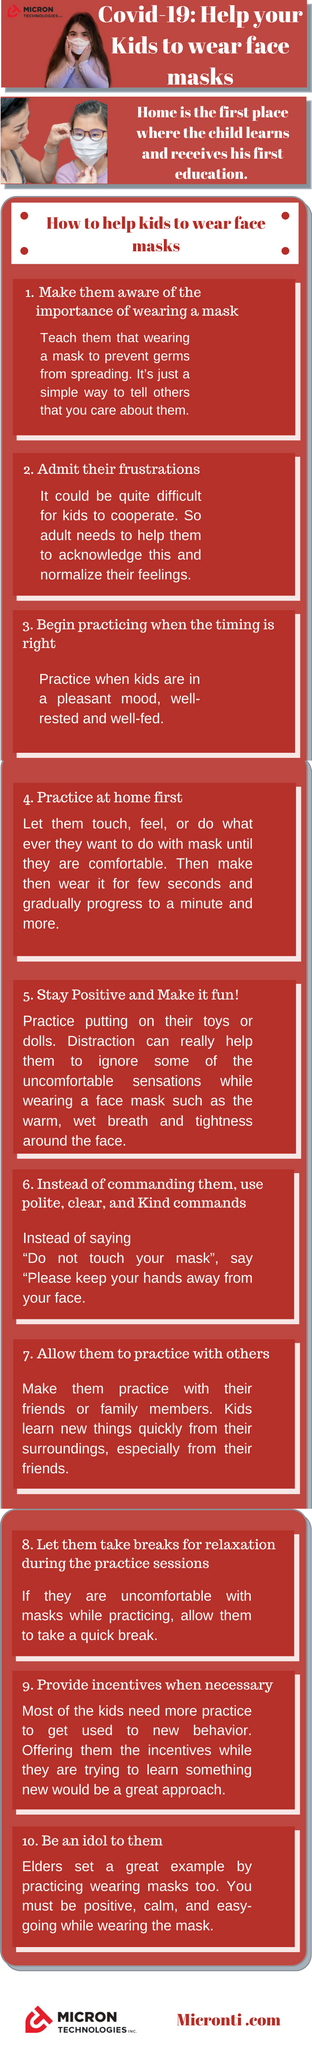 Face mask in Canada